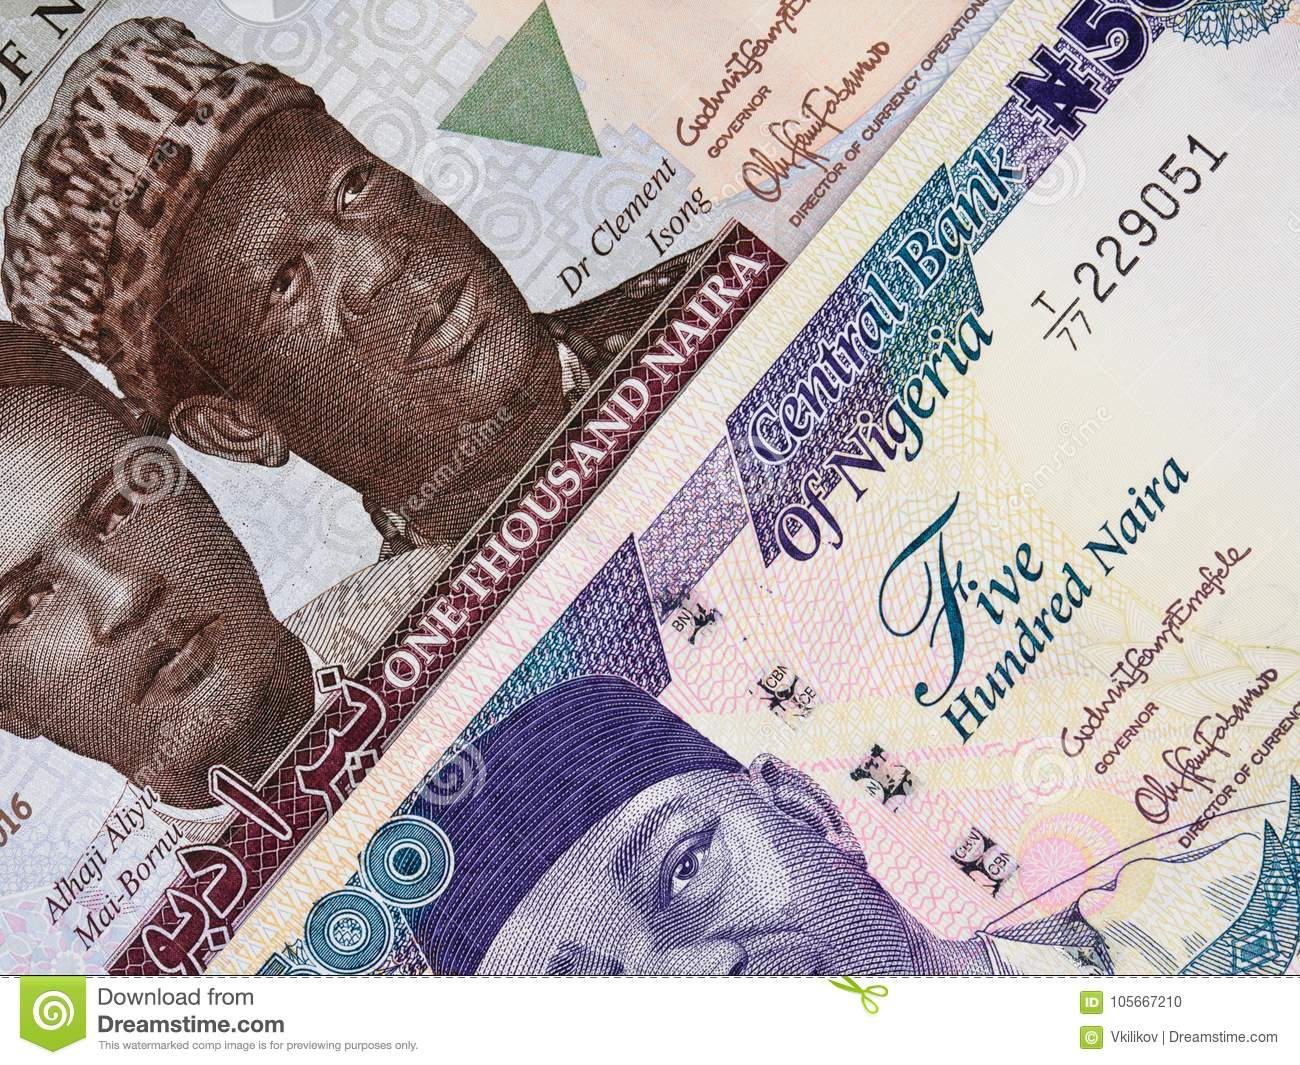 Nigerian currency naira central bank notes, Nigeria money